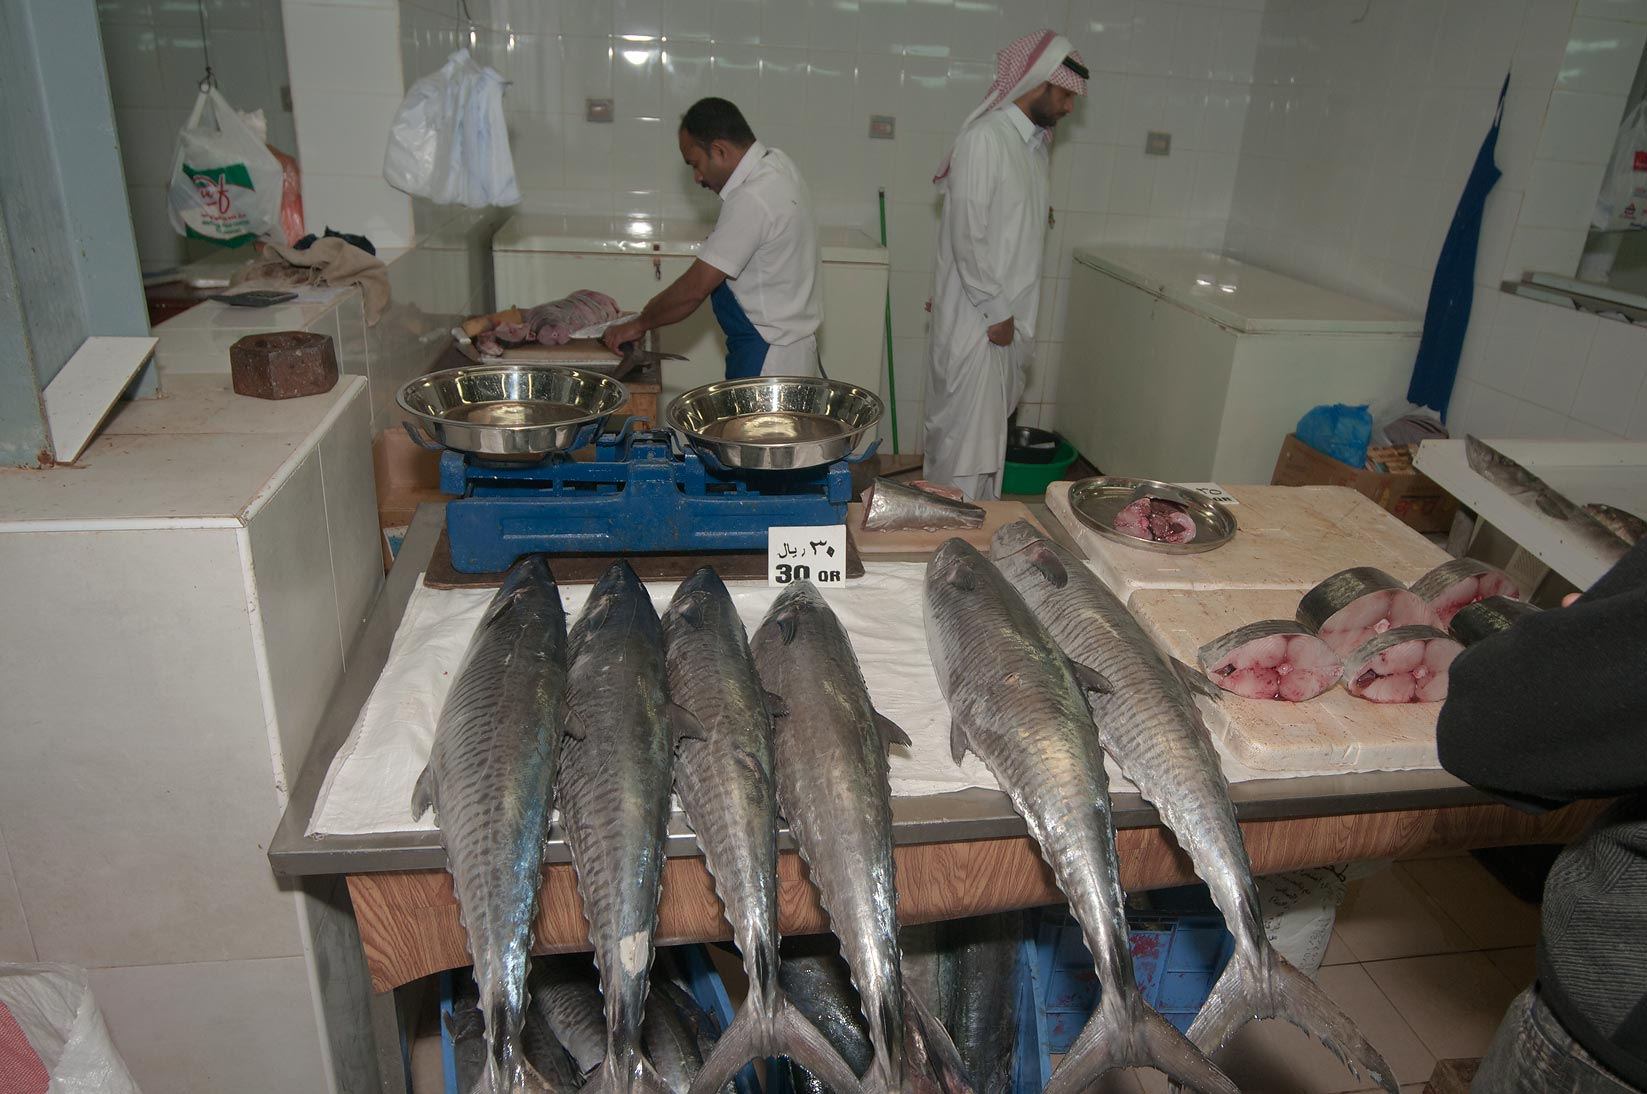 Cutting tuna in Central Fish Market. Doha, Qatar